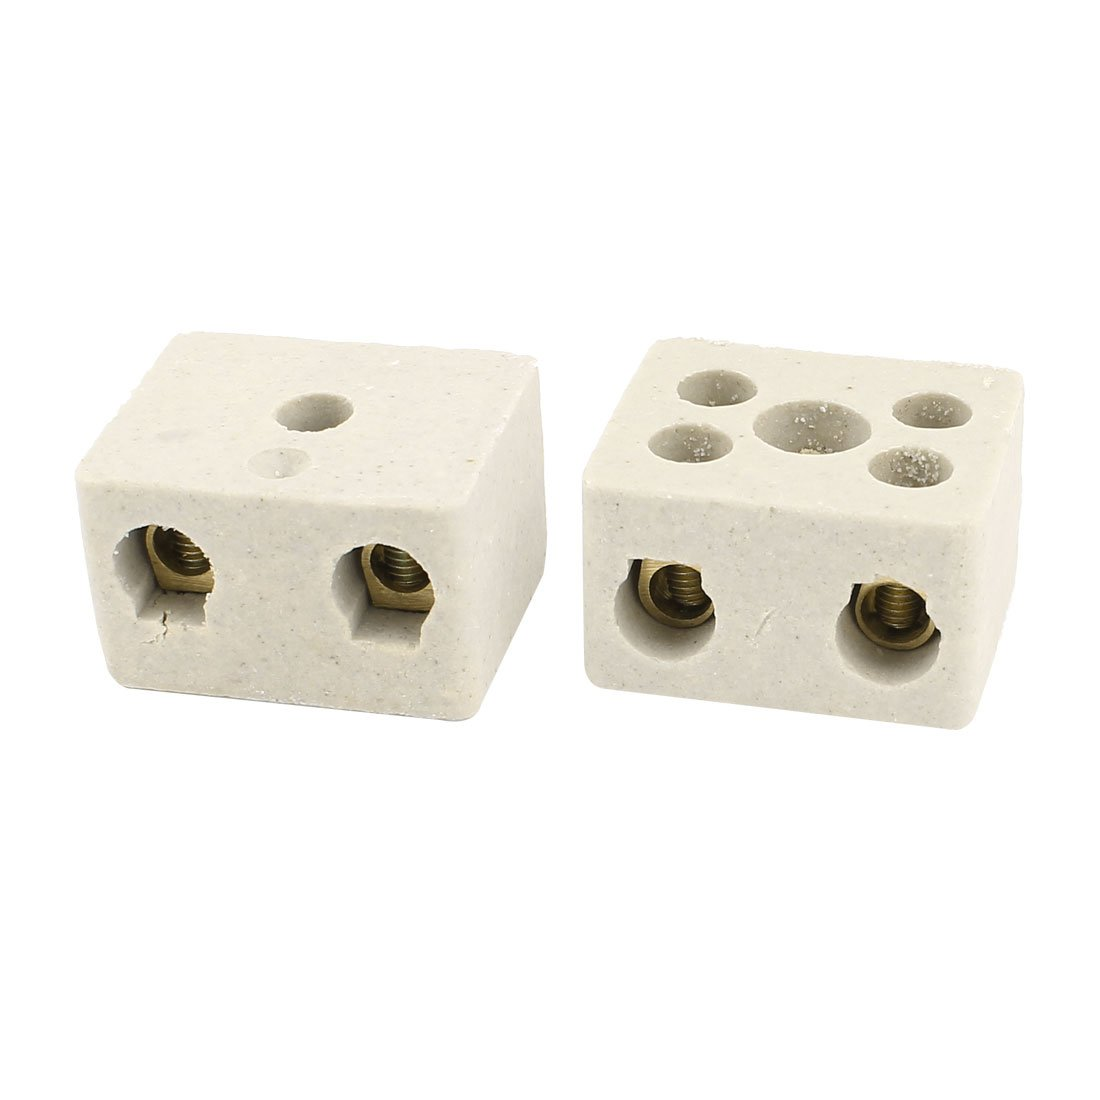 sourcingmap® 2Pcs Insulation High Temp Porcelain Ceramic Terminal Block AC 380V 30A a14091000ux0564